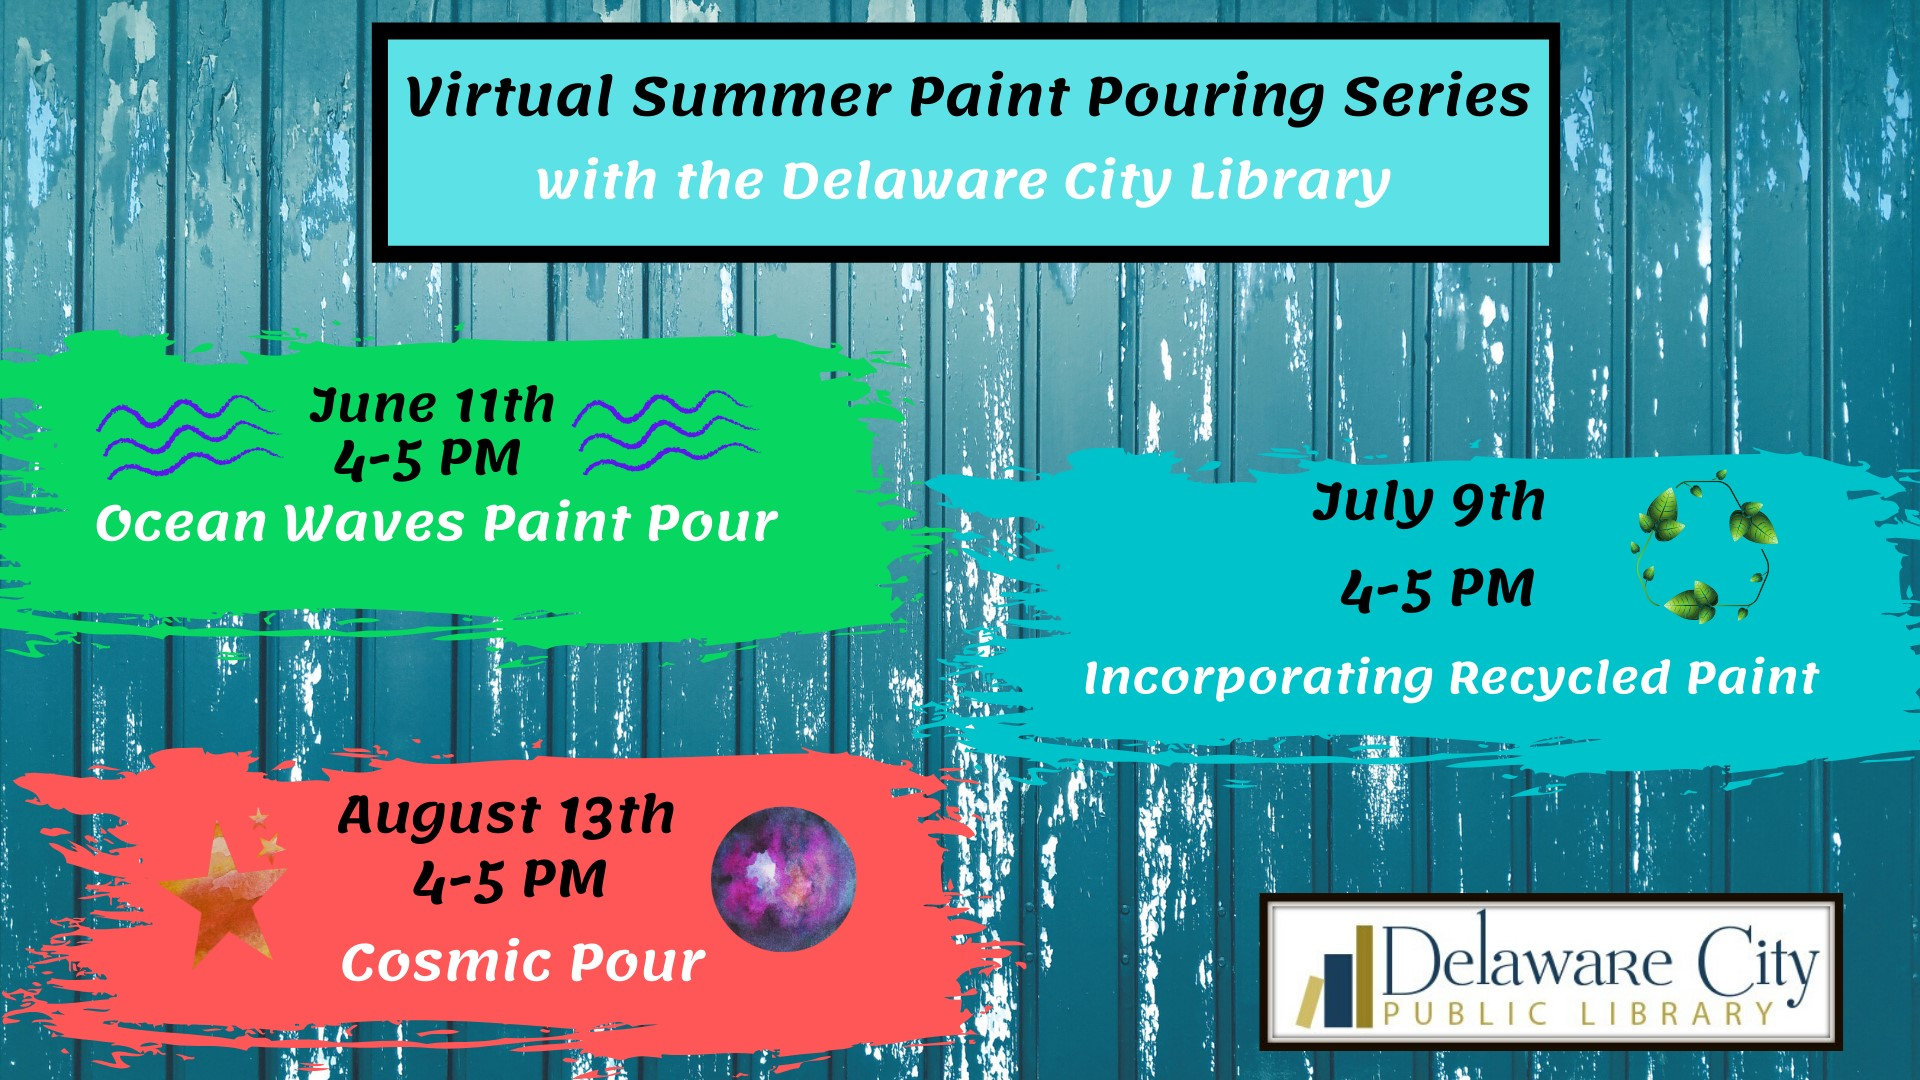 Virtual Summer Paint Pouring Series